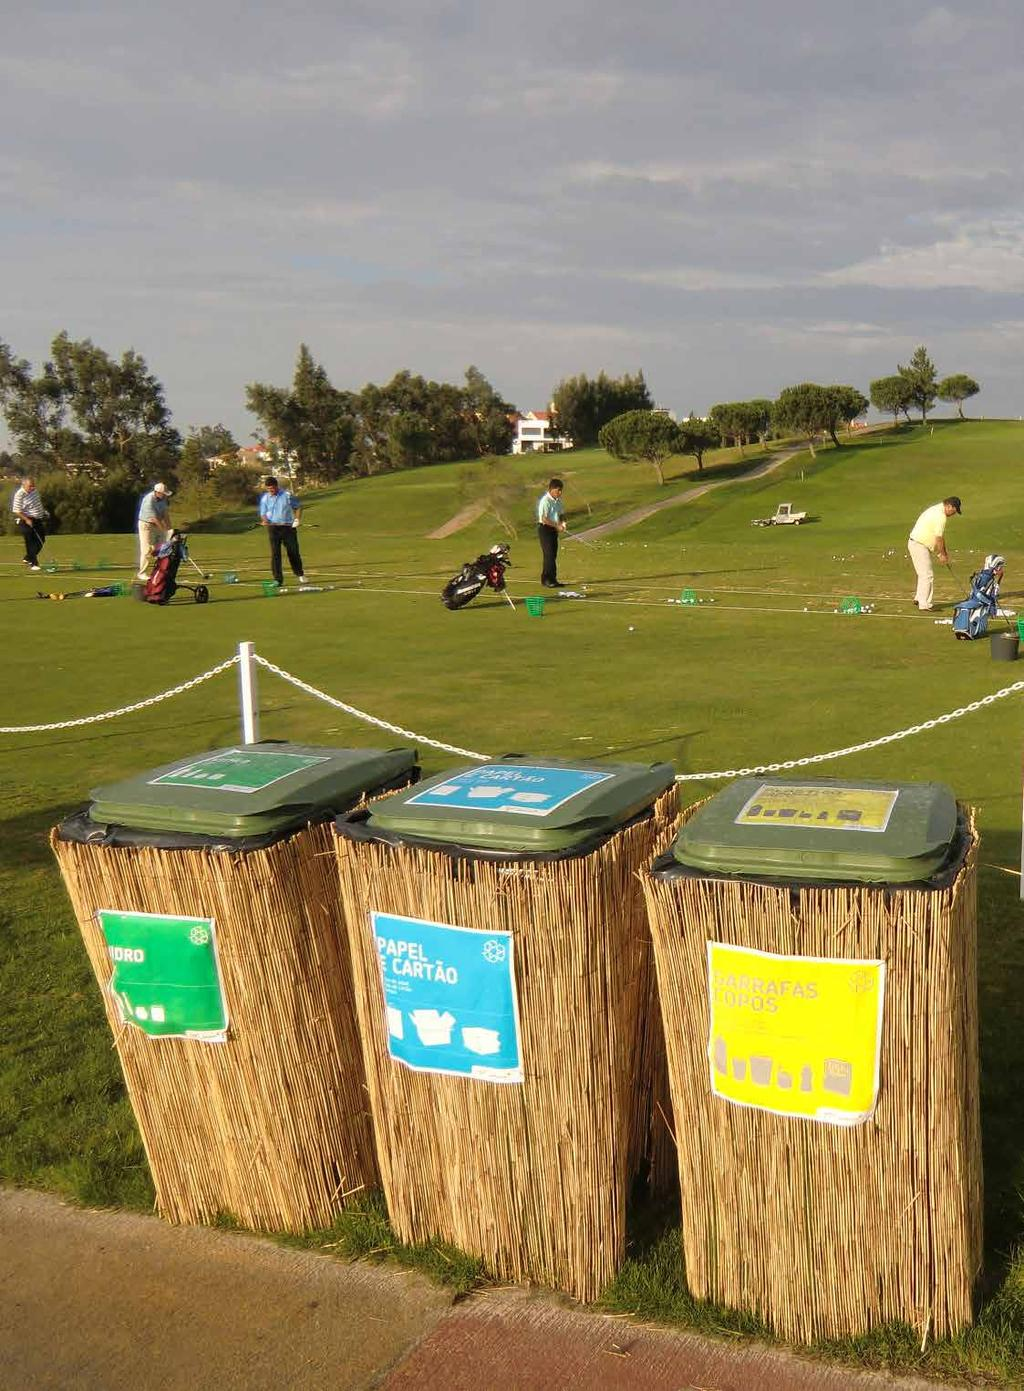 RESPONSIBLE GOLF COURSE MANAGEMENT IS ABOUT minimising... WASTE through reduction, re-use, and recycling. This will become the industry norm through awareness campaigns.